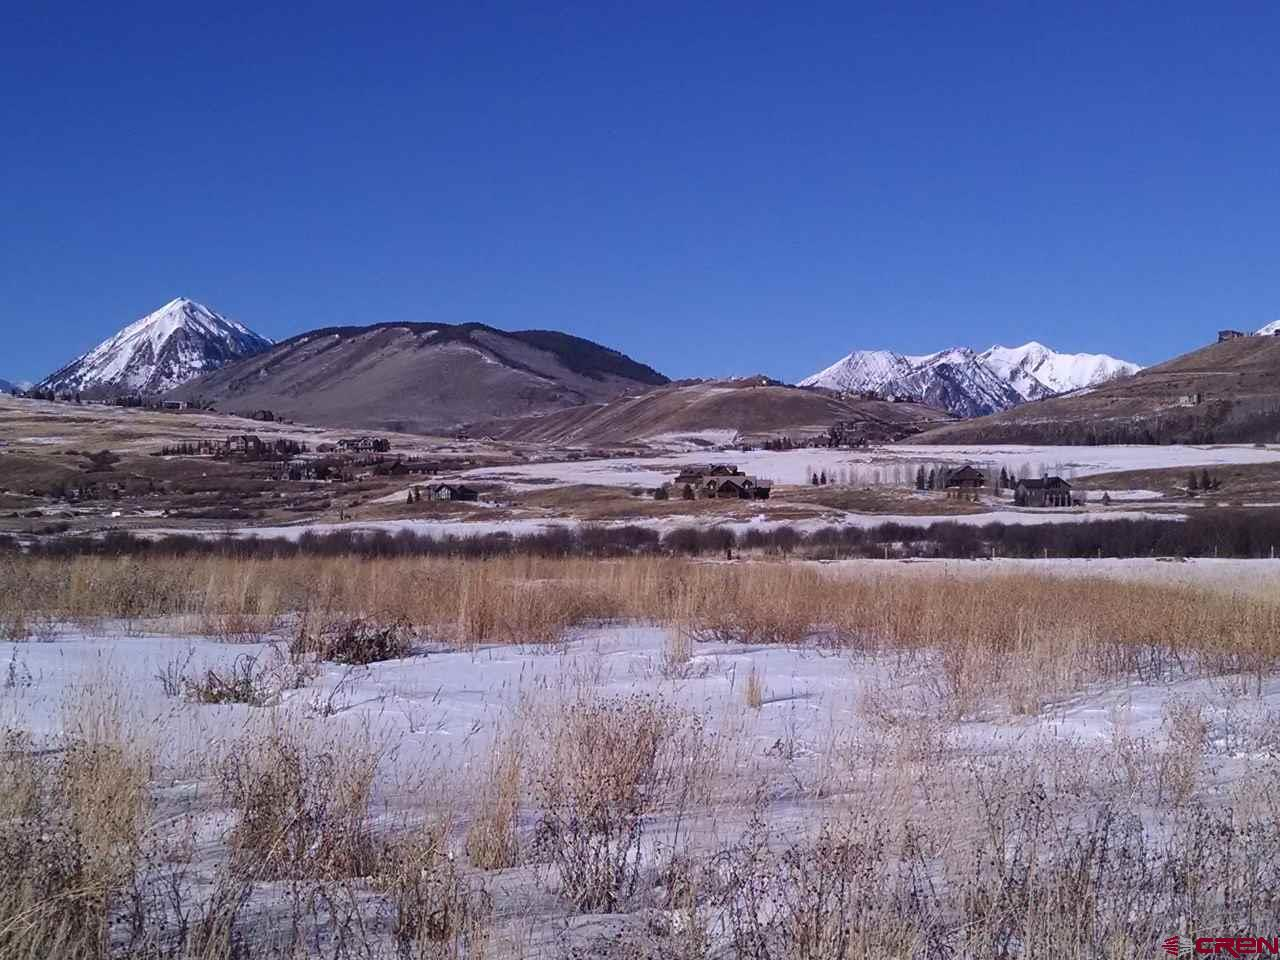 MLS# 757733 - 5 - 341 Mccormick Ranch Road, Crested Butte, CO 81224